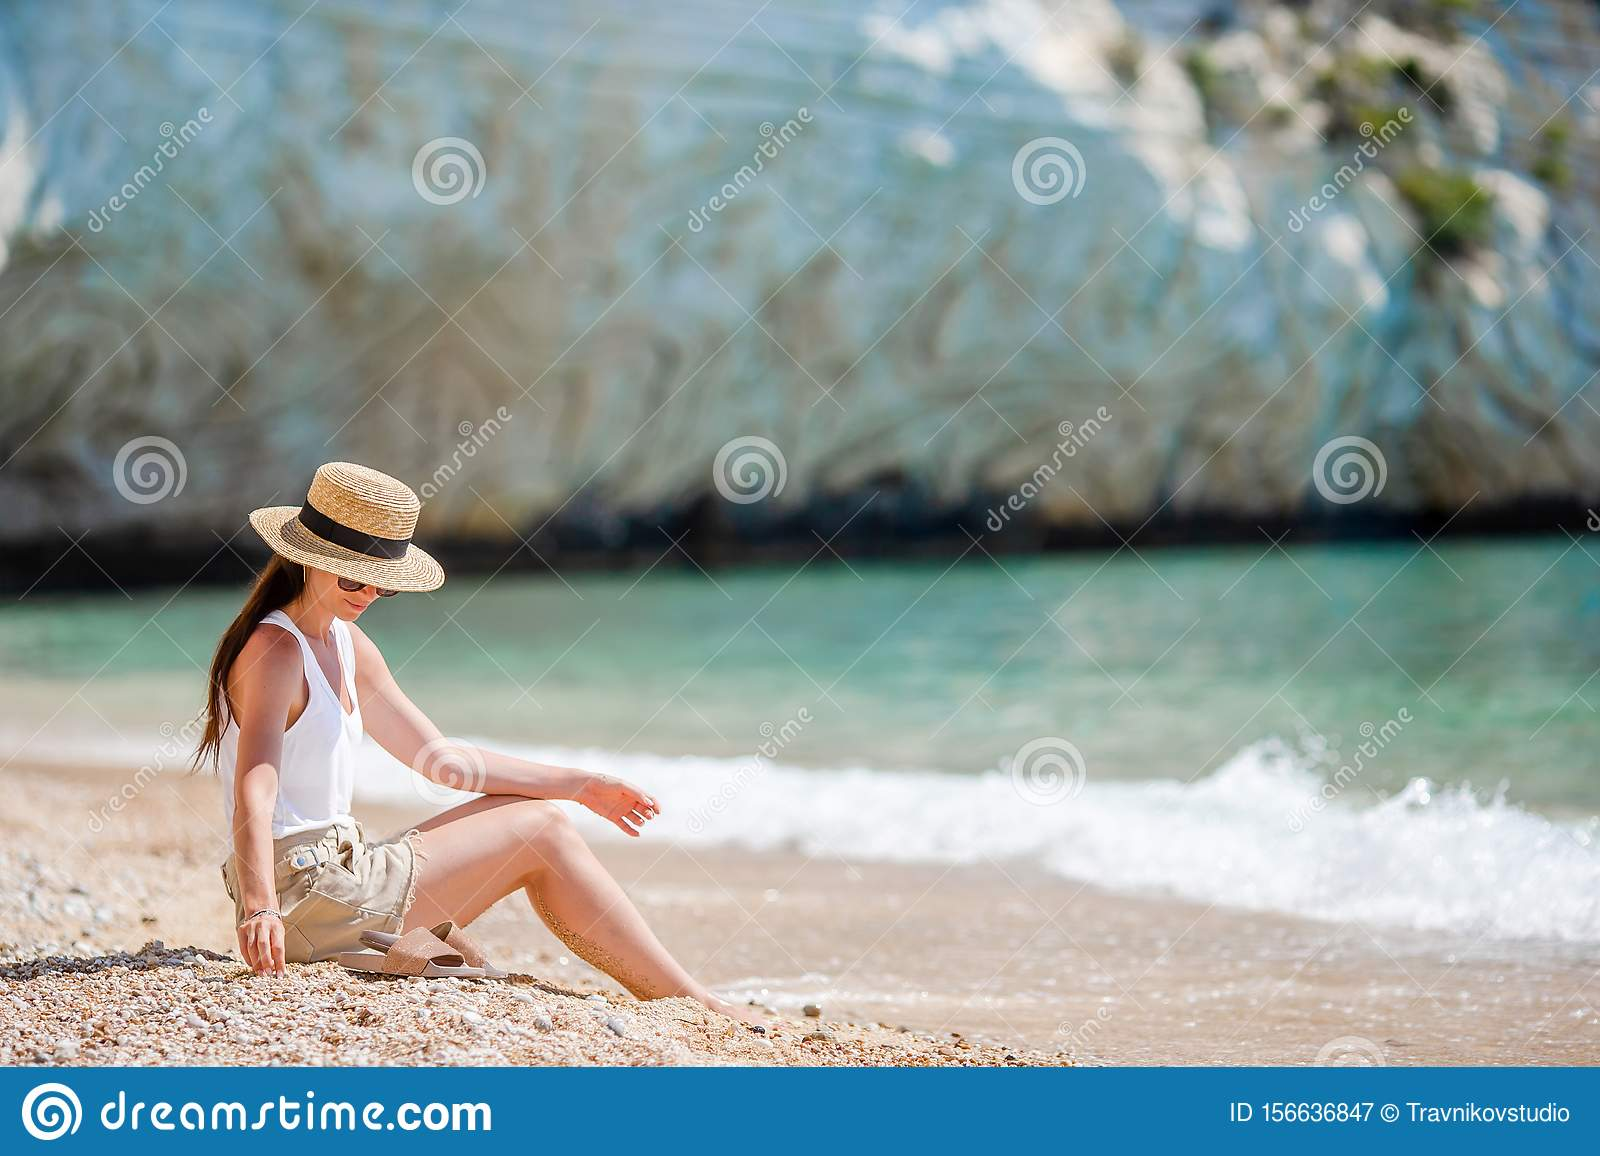 Woman laying on the beach enjoying summer holidays looking at the sea